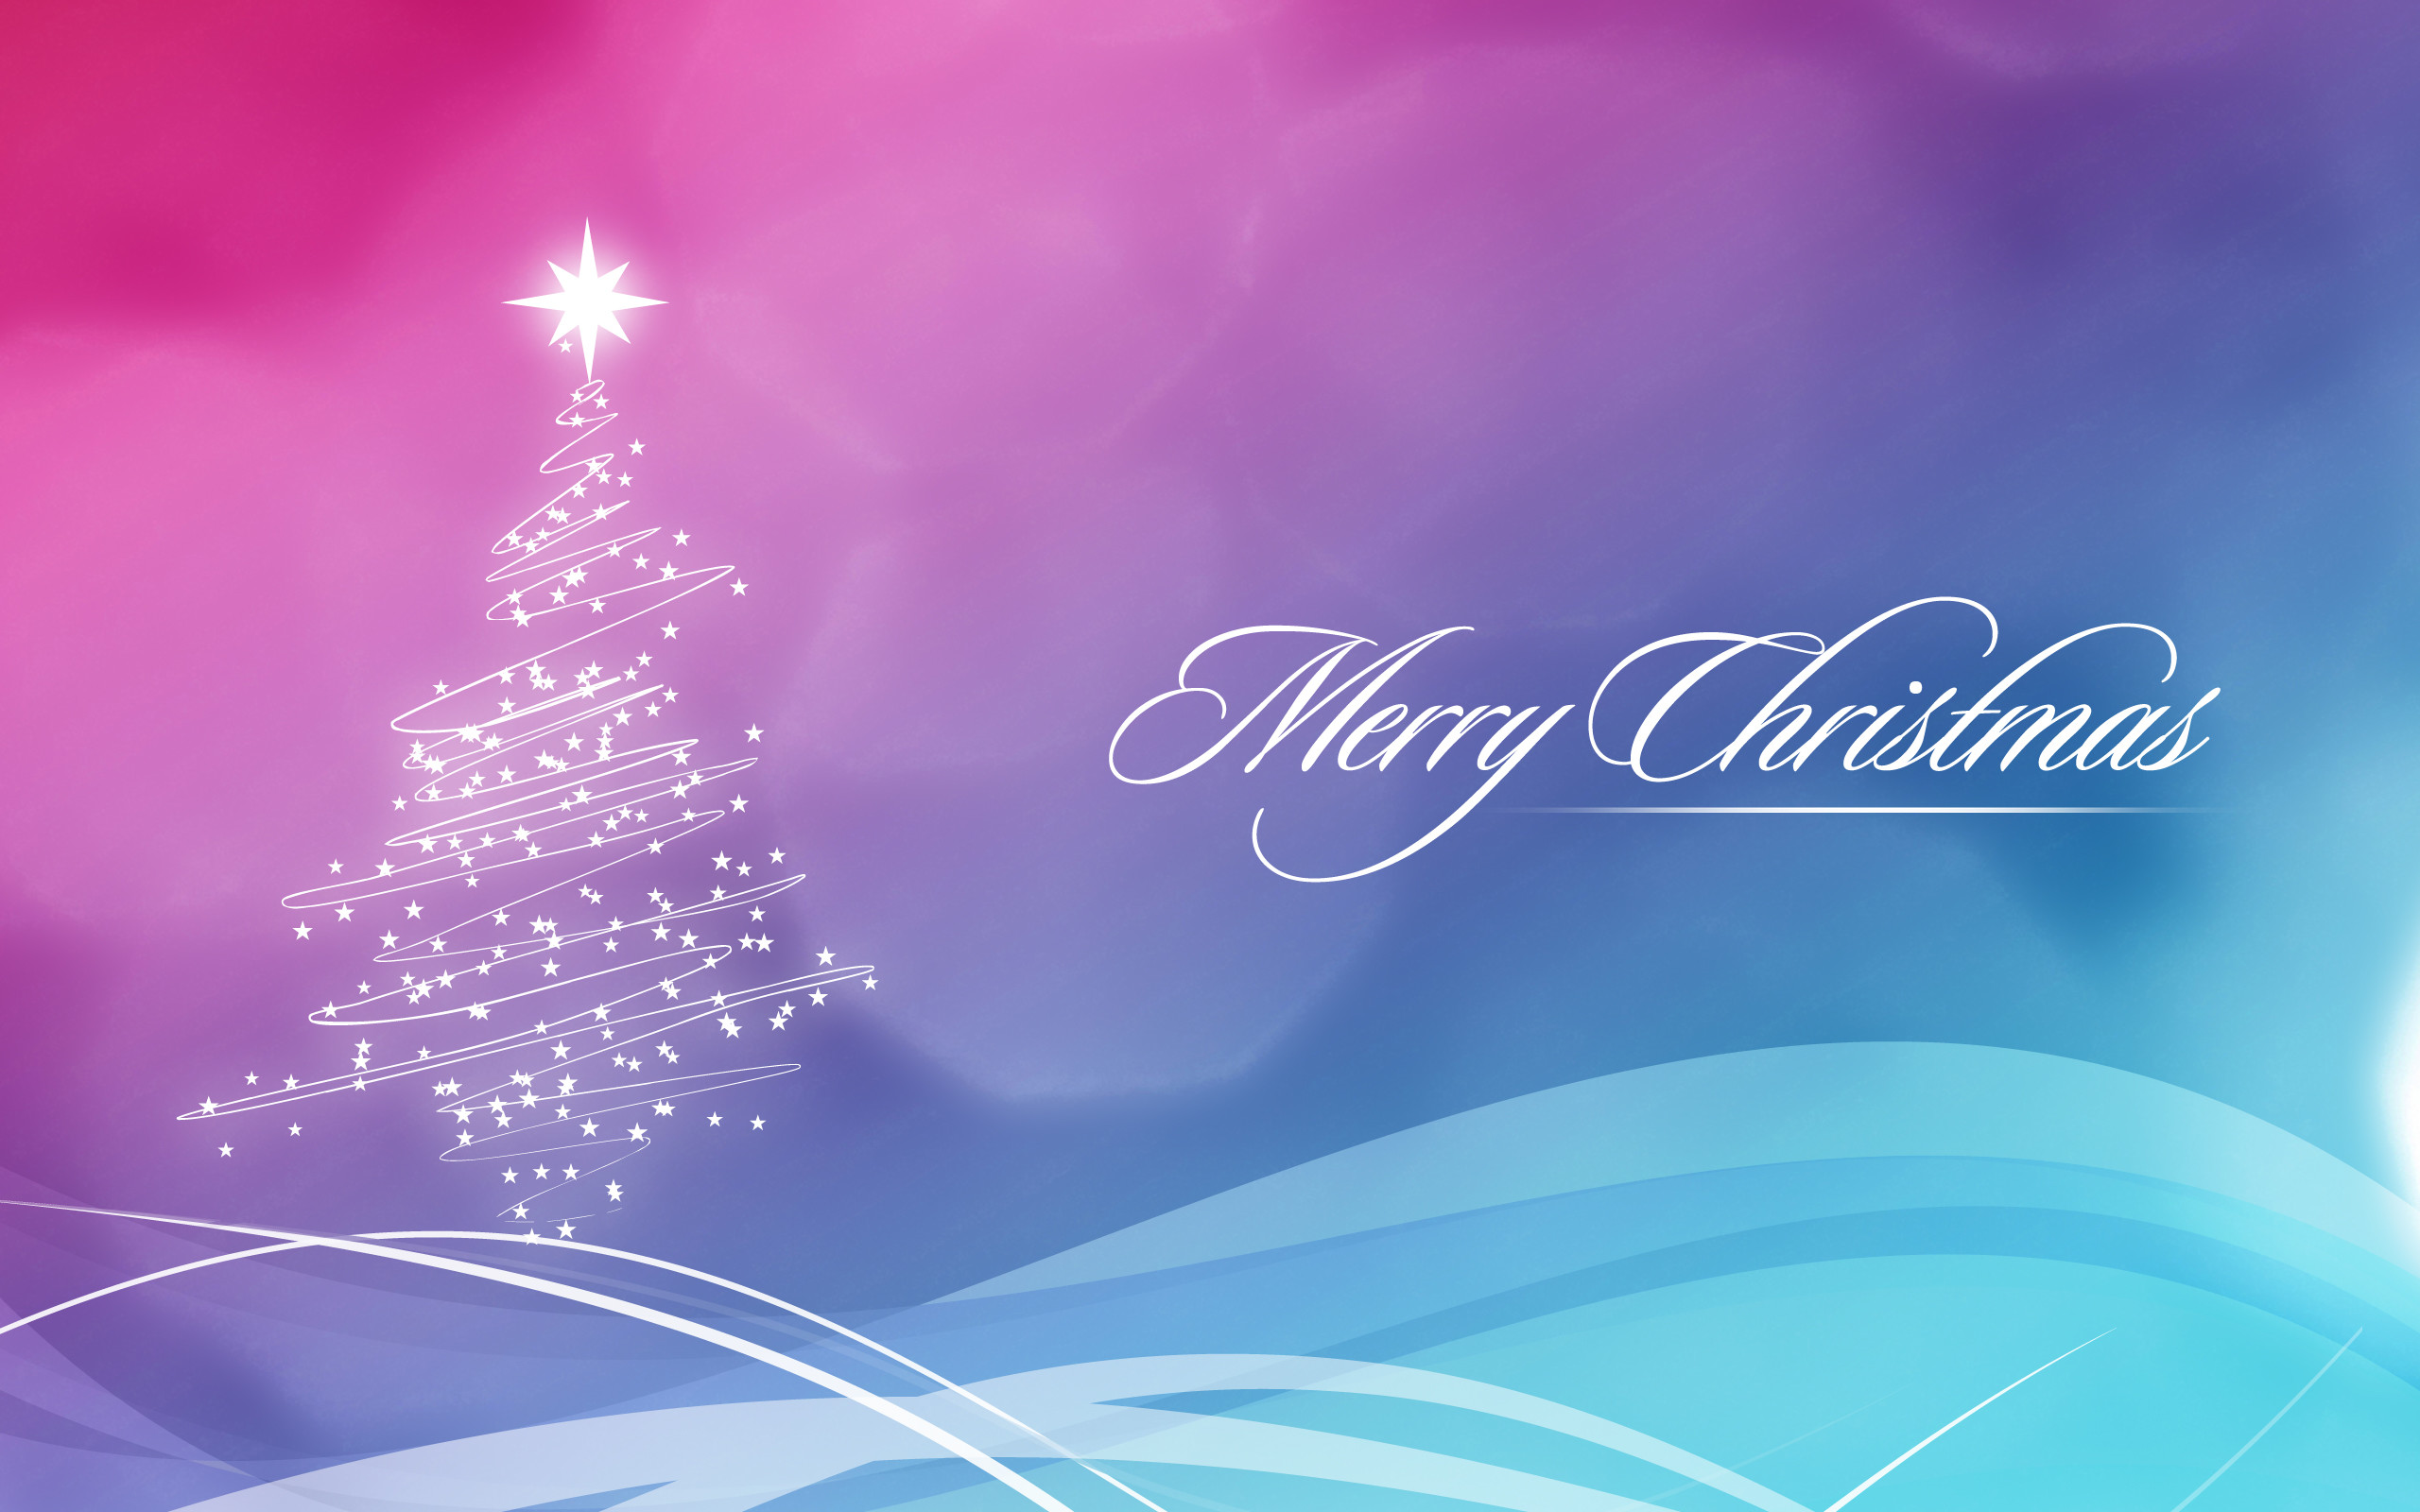 Blue and Pink Christmas Wallpaper wallpapers and stock photos